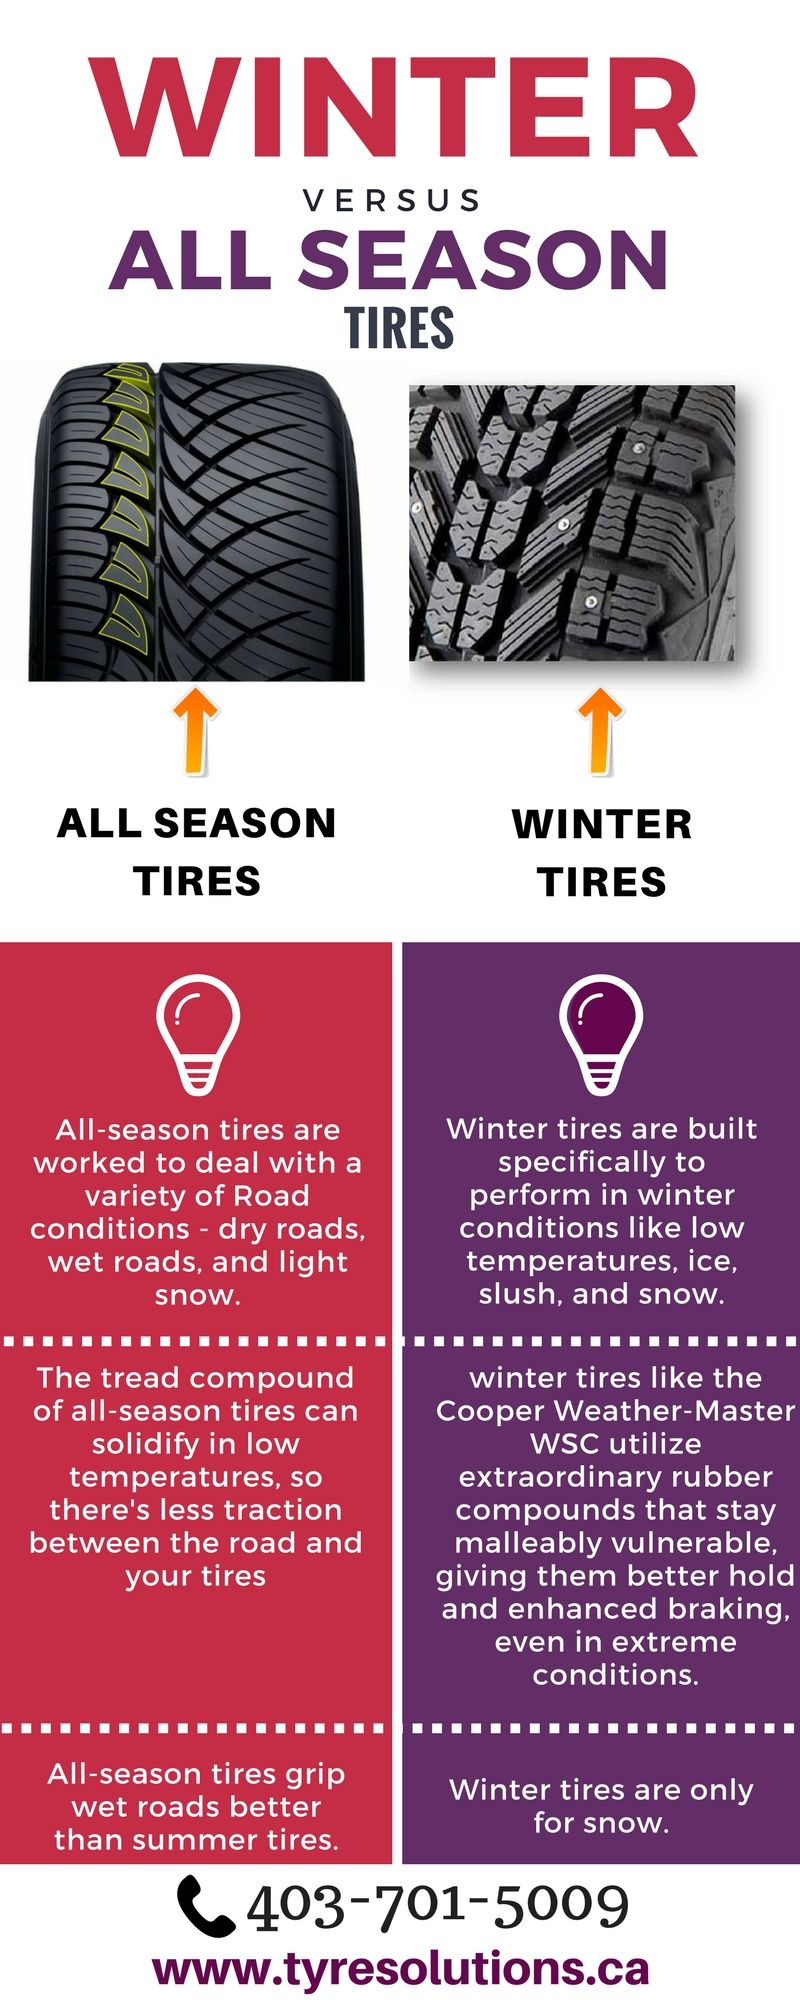 Tire solutions is Calgary based Tire shop. You will get